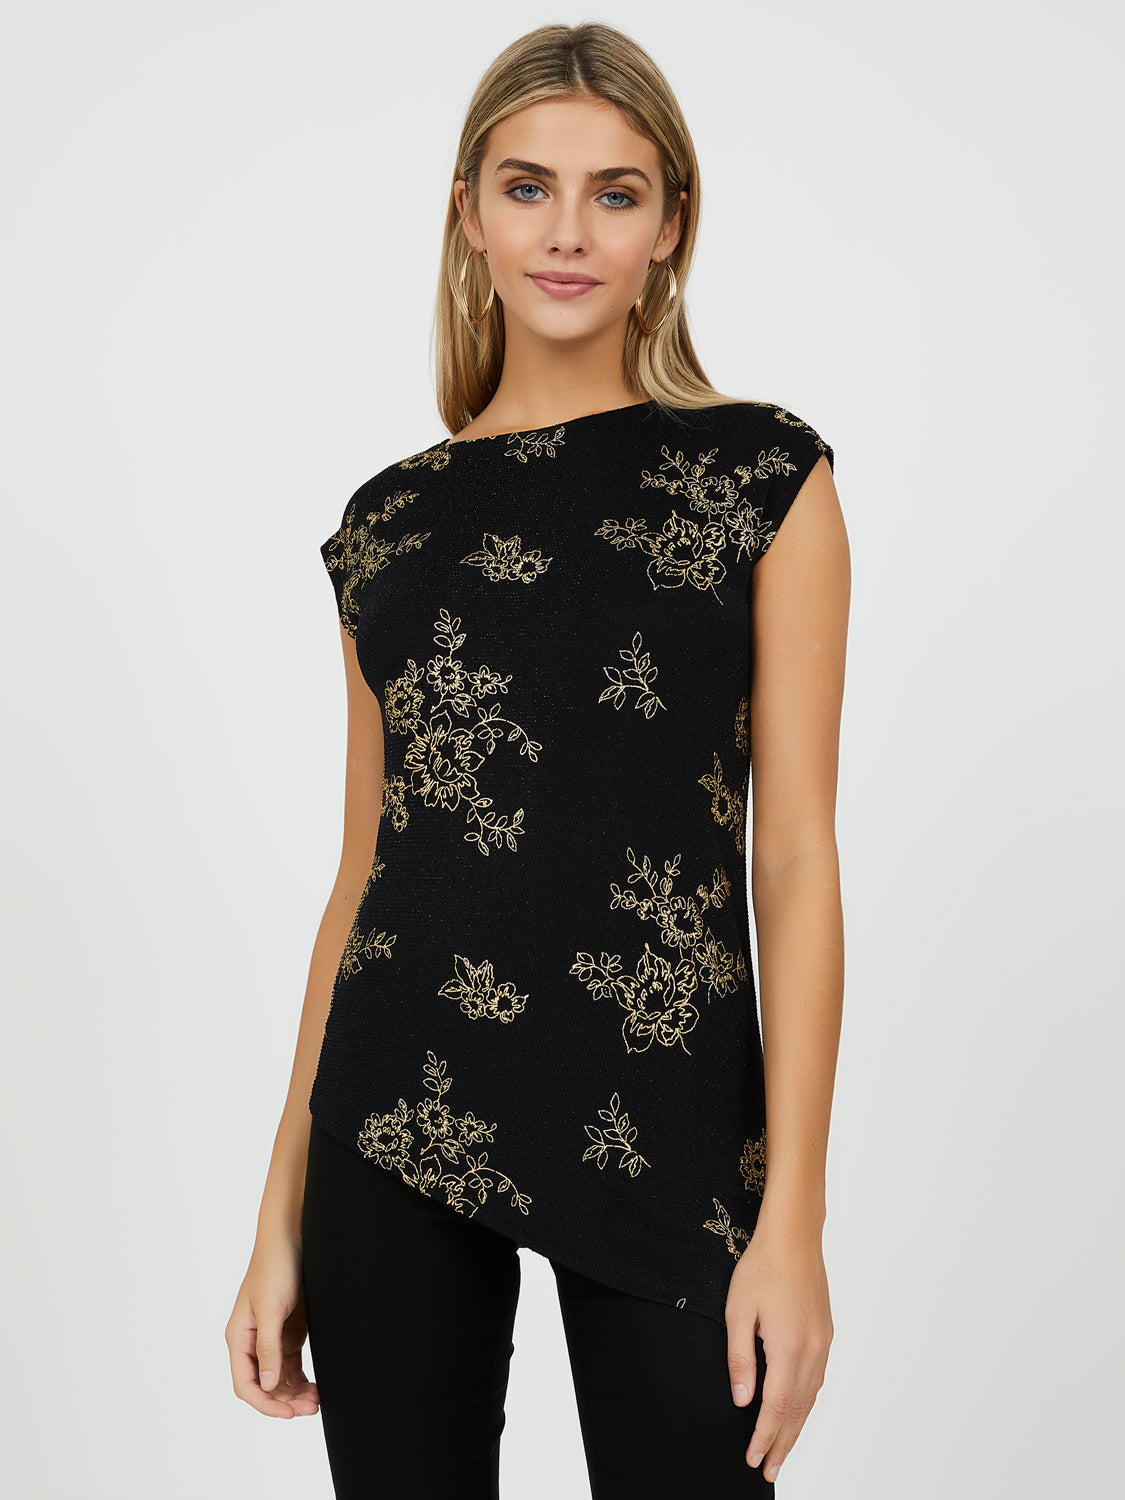 Asymmetrical Short Sleeve Floral Print Top